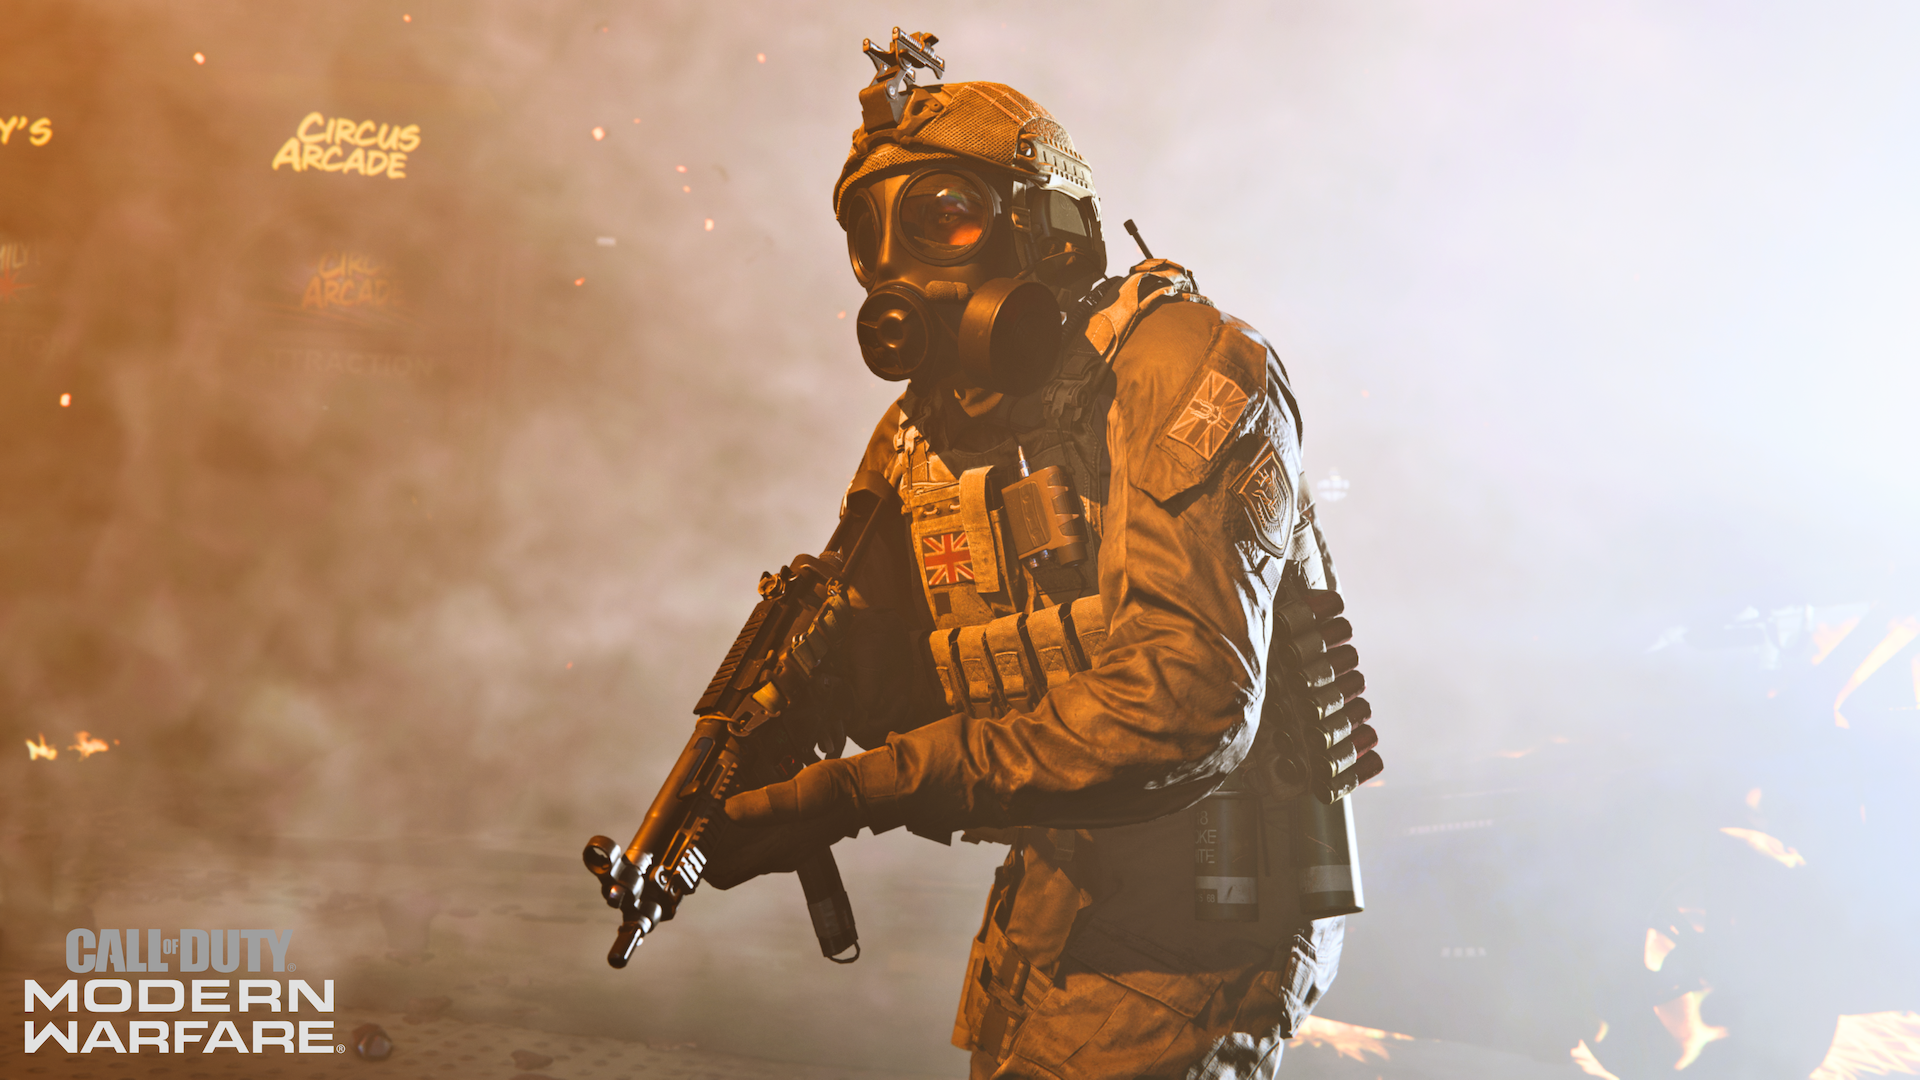 13 Unreleased Operators For Modern Warfare Found In Pc Files